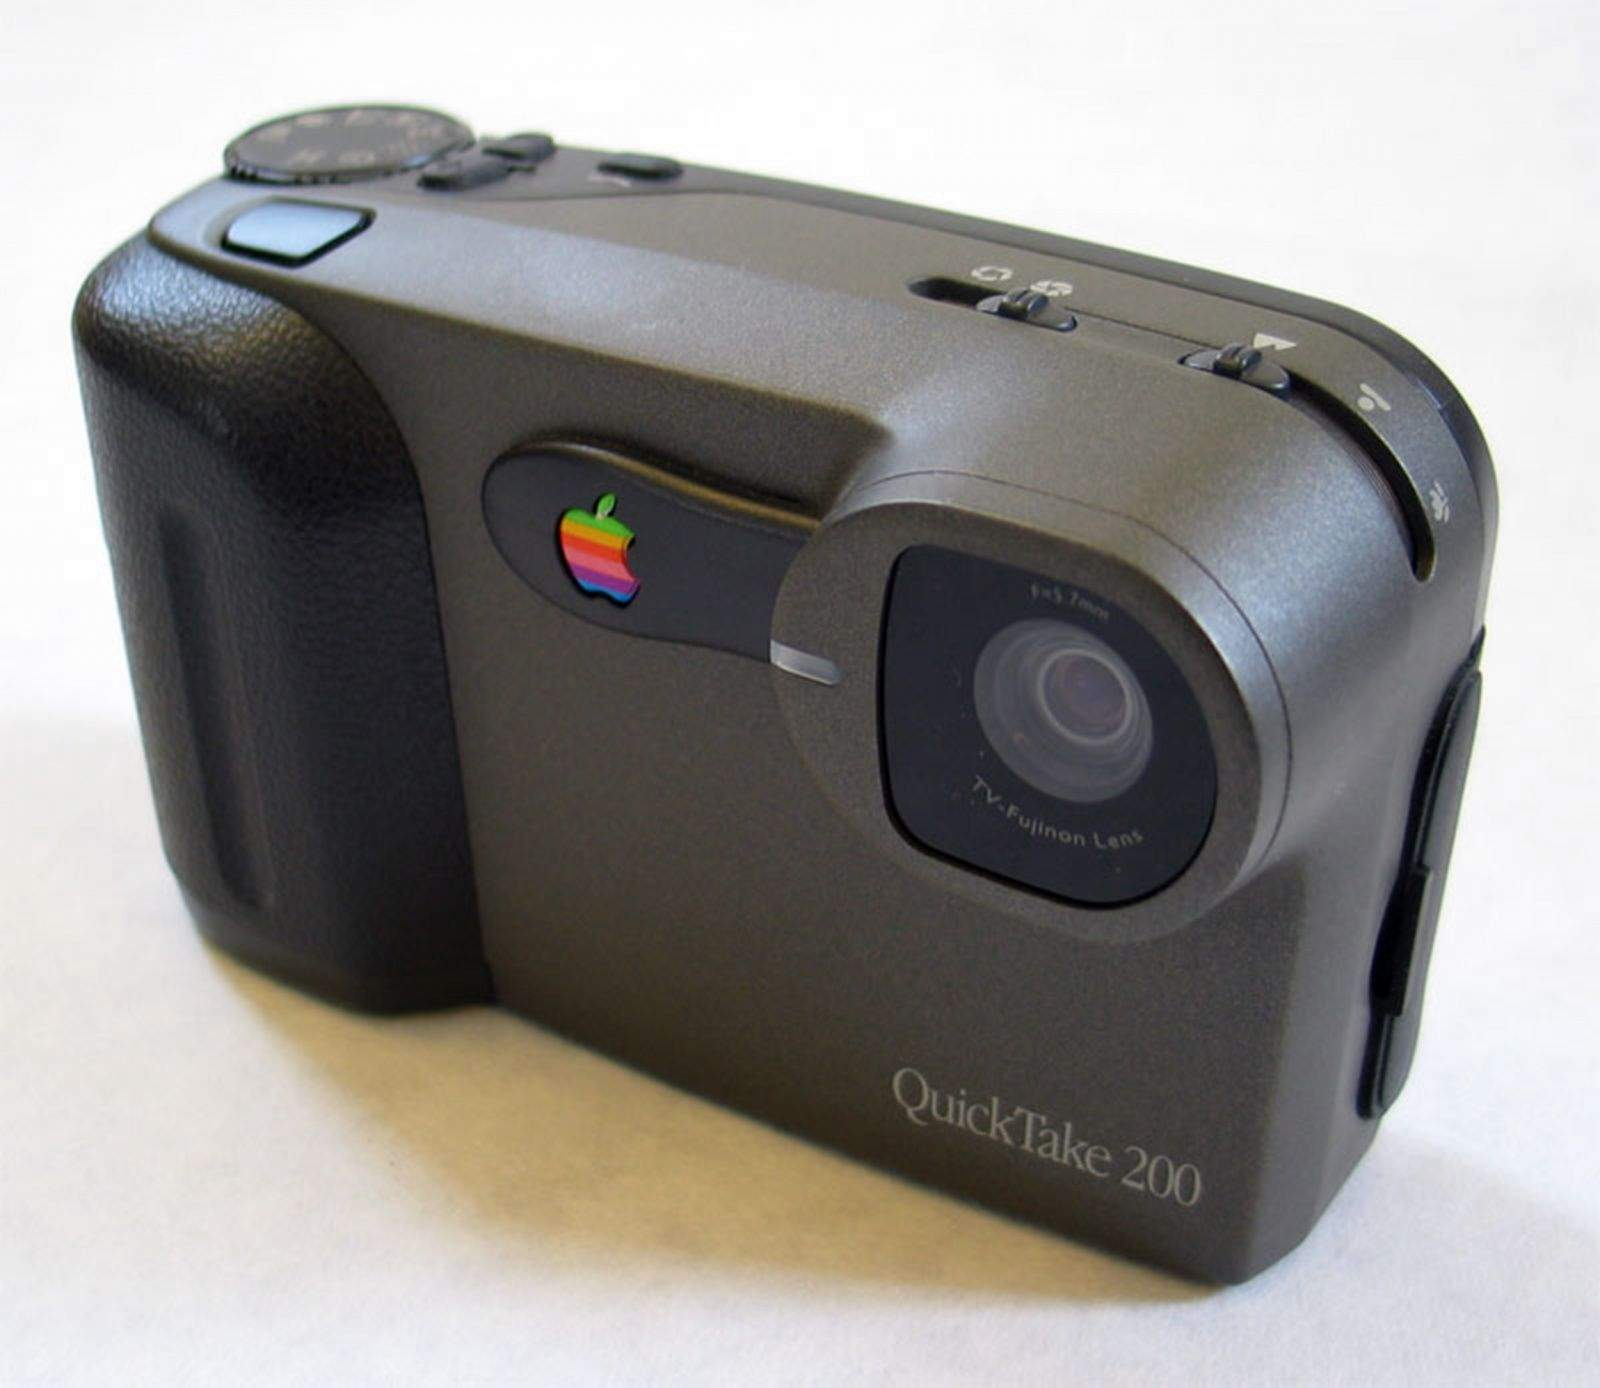 QuickTake: Apple's first doomed foray into digital photography